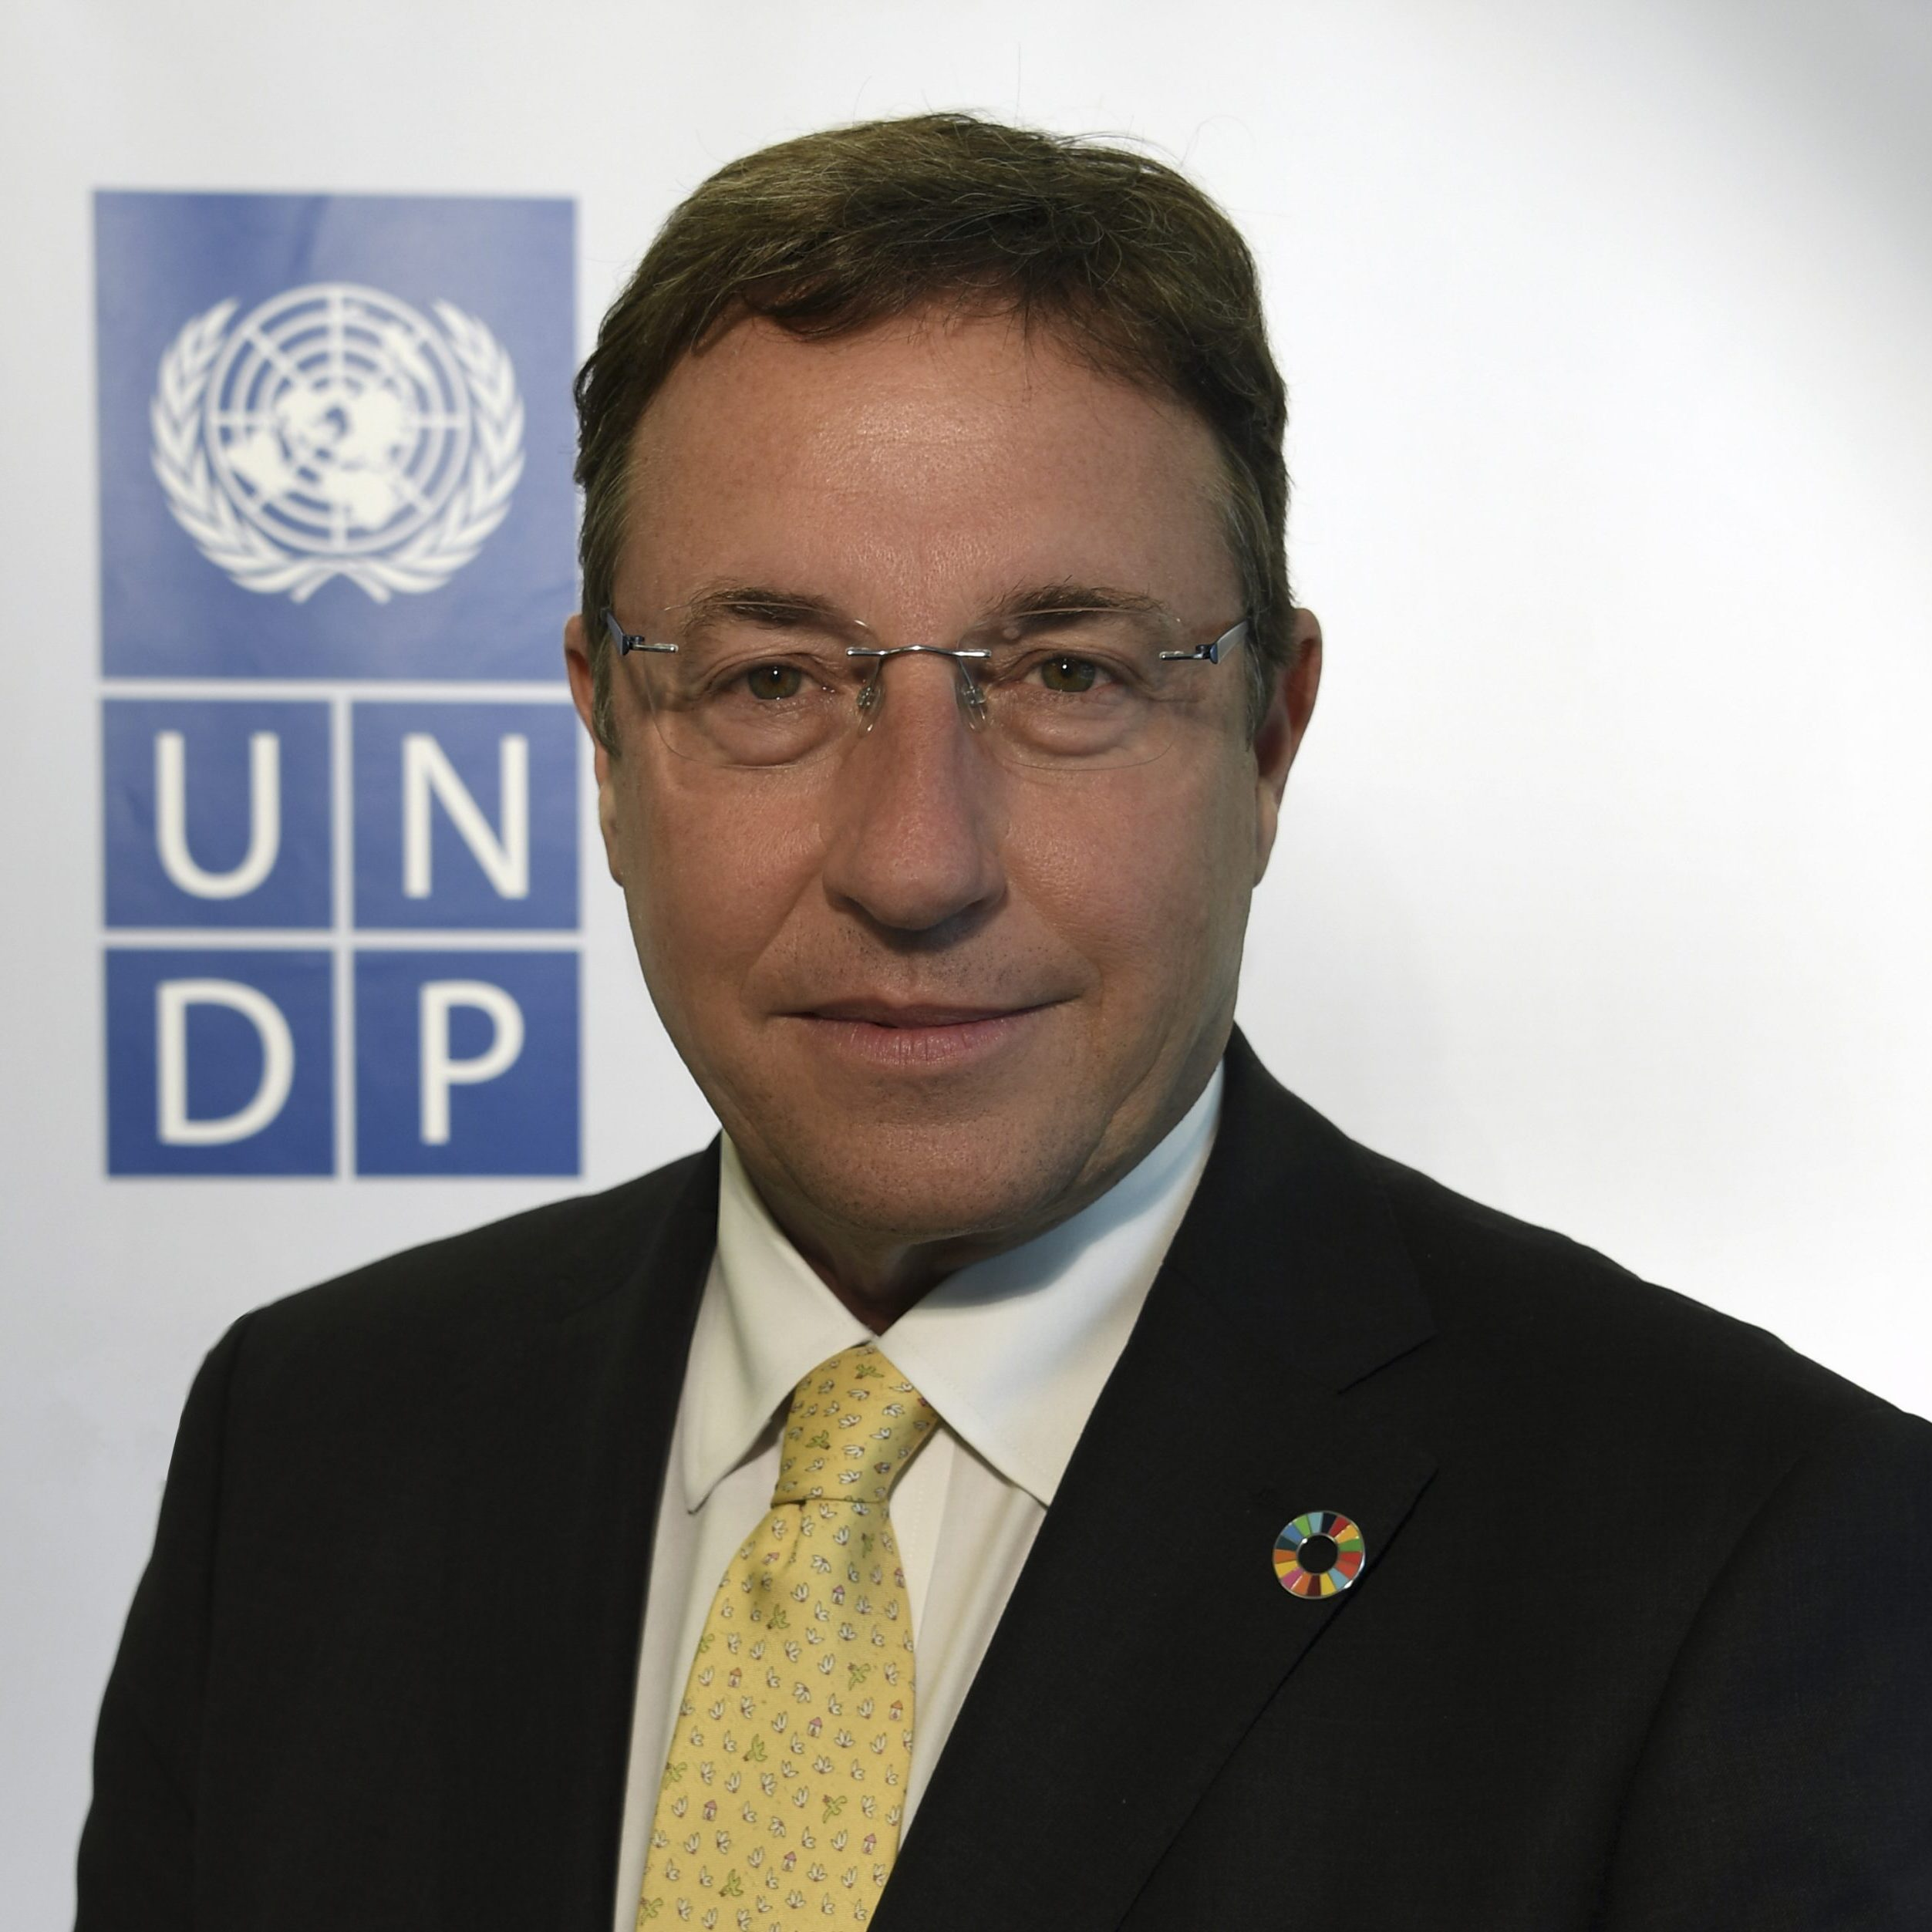 New York, 28 June 2017 - UNDP official portrait of Mr. Achim Steiner, UNDP Administrator. © UNDP / Andrew Hein